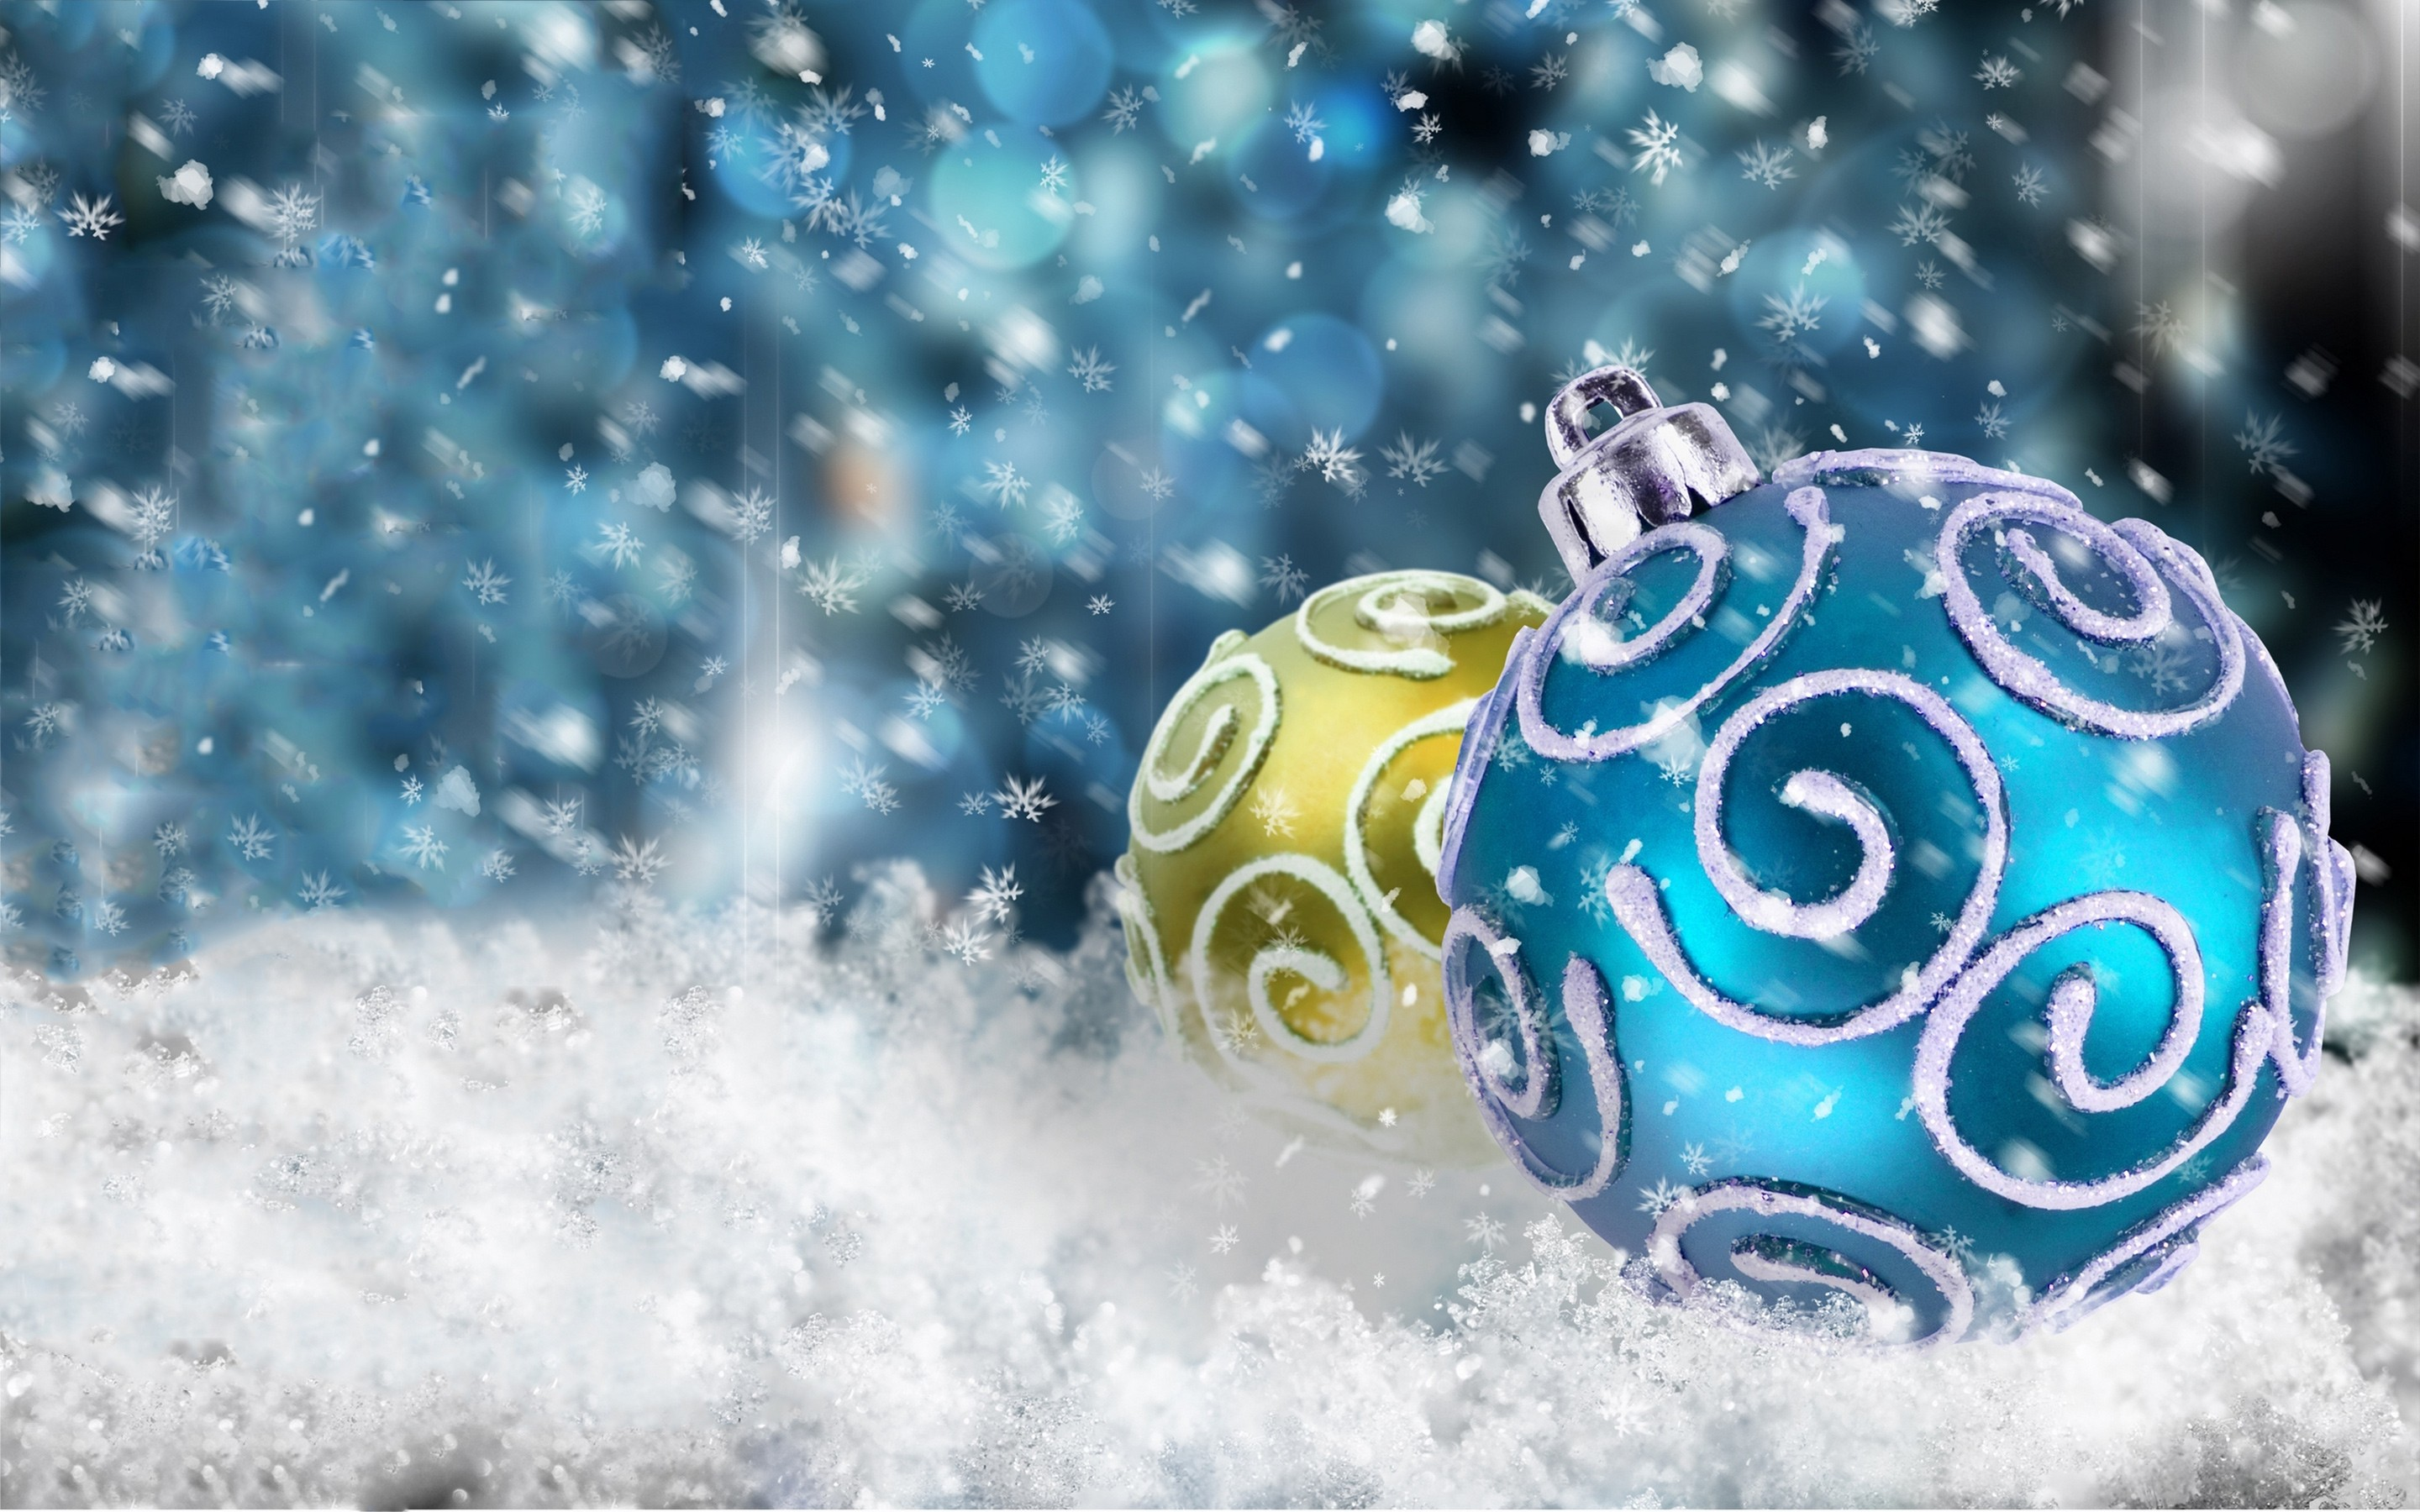 Wallpapers Of Christmas